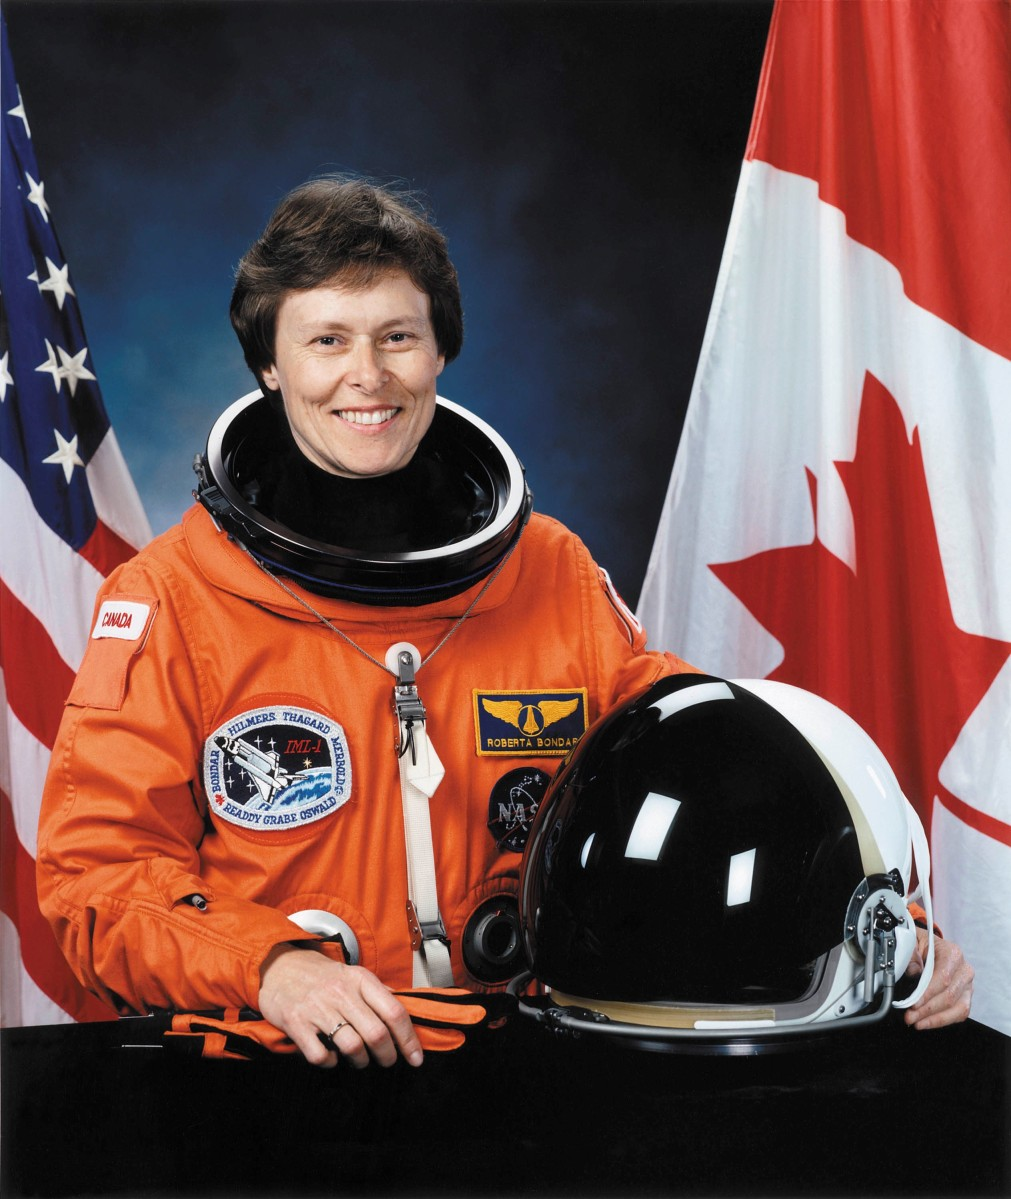 Dr. Roberta Bondar to receive Life-Time Achievement Award